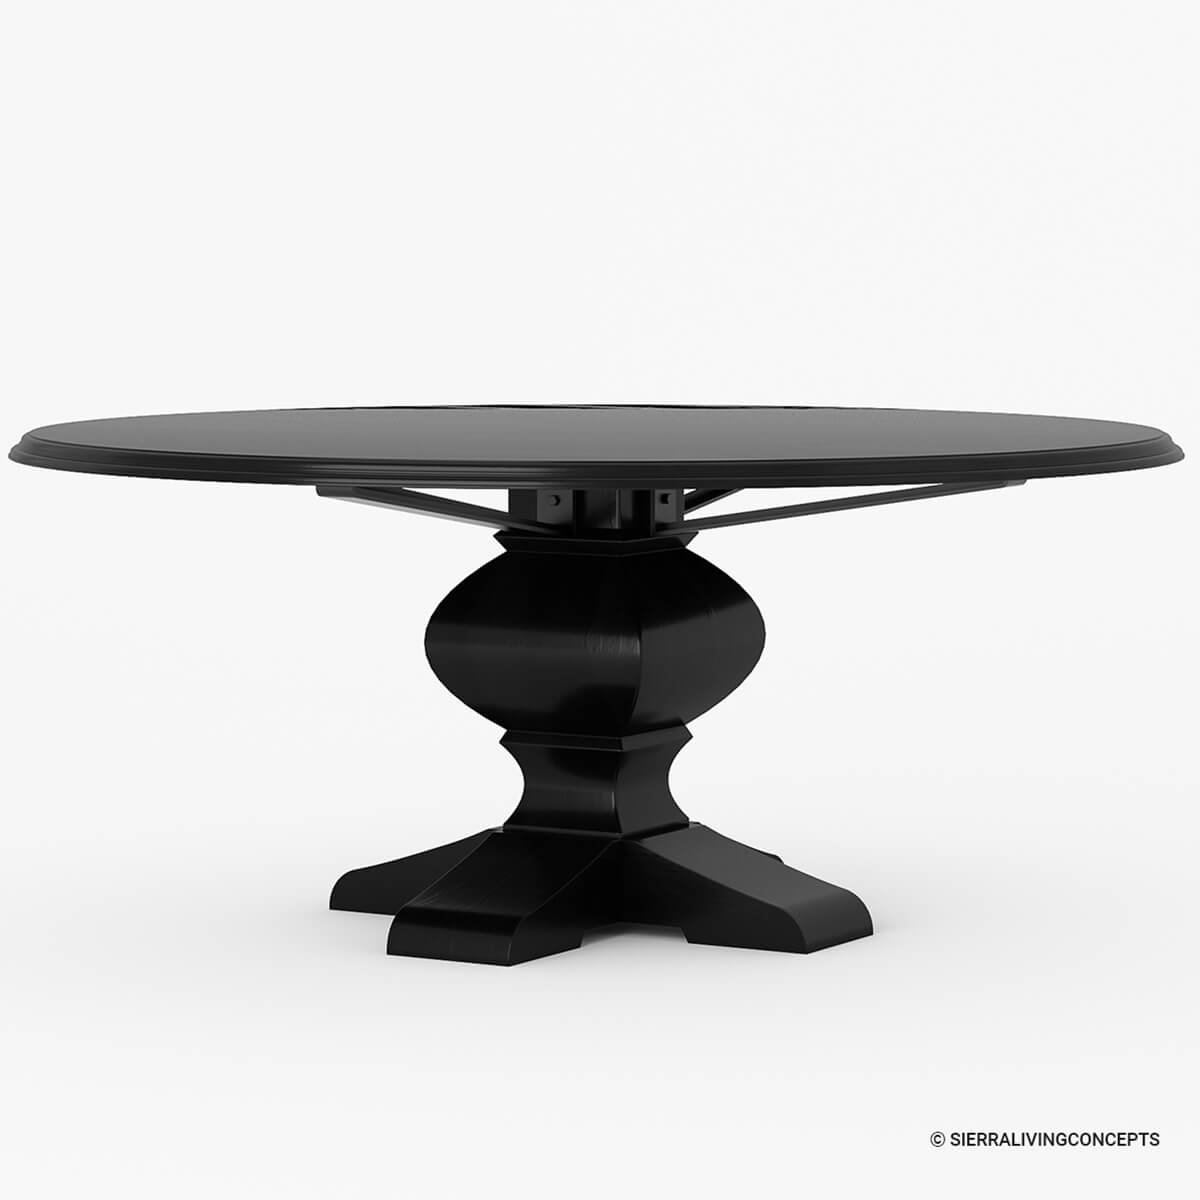 Sierra nevada rustic solid wood large round dining table for Solid wood round dining room table